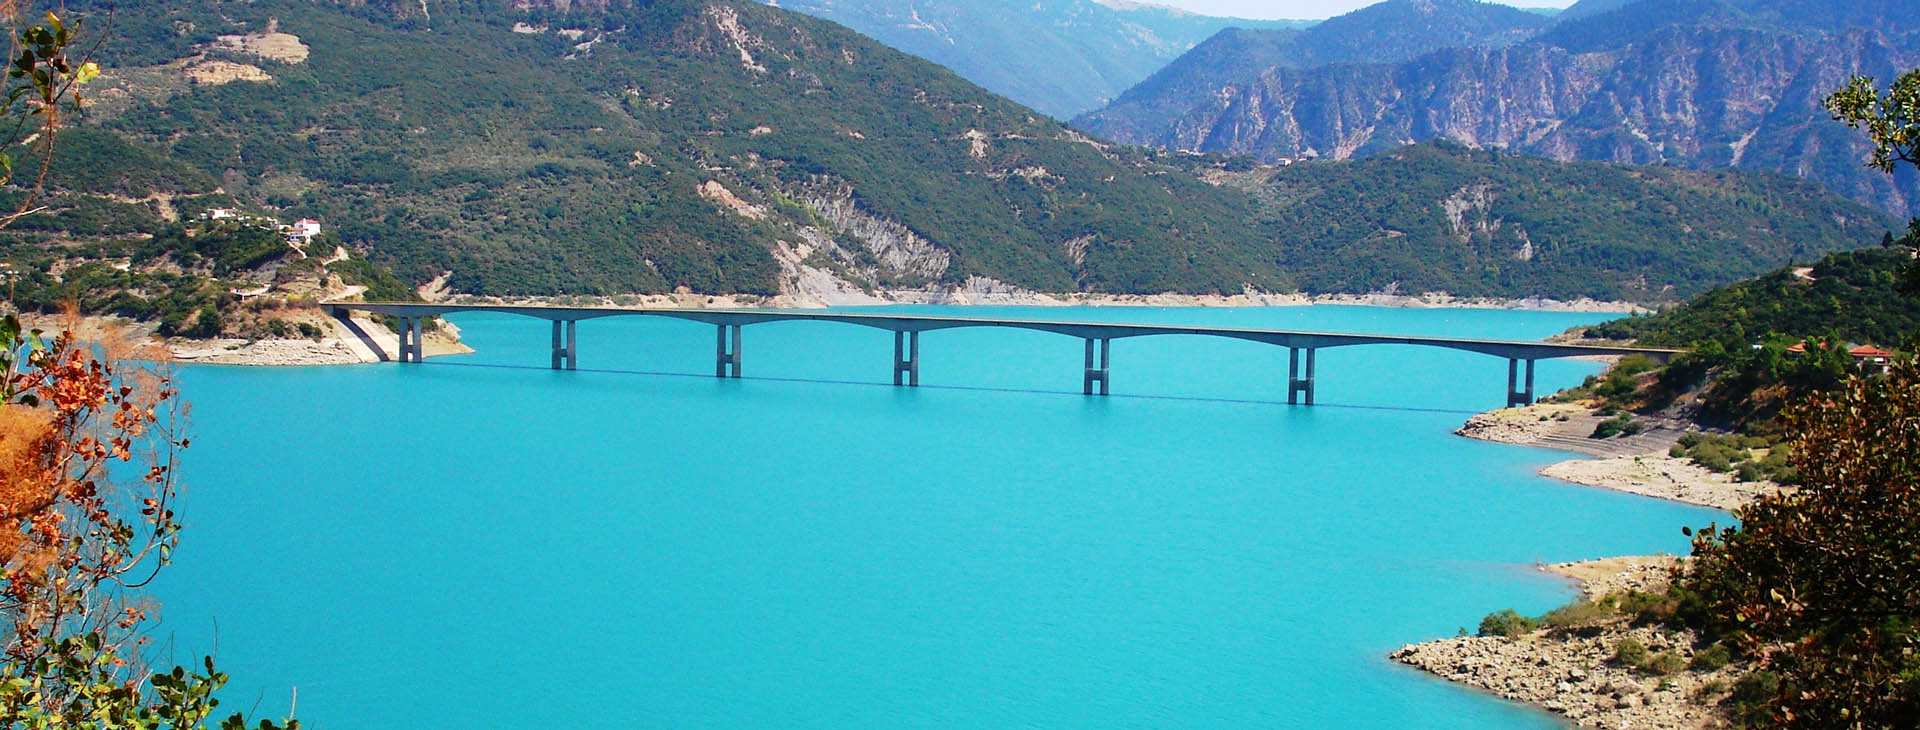 Episkopi Bridge - Kremasta lake, Aitoloakarnania